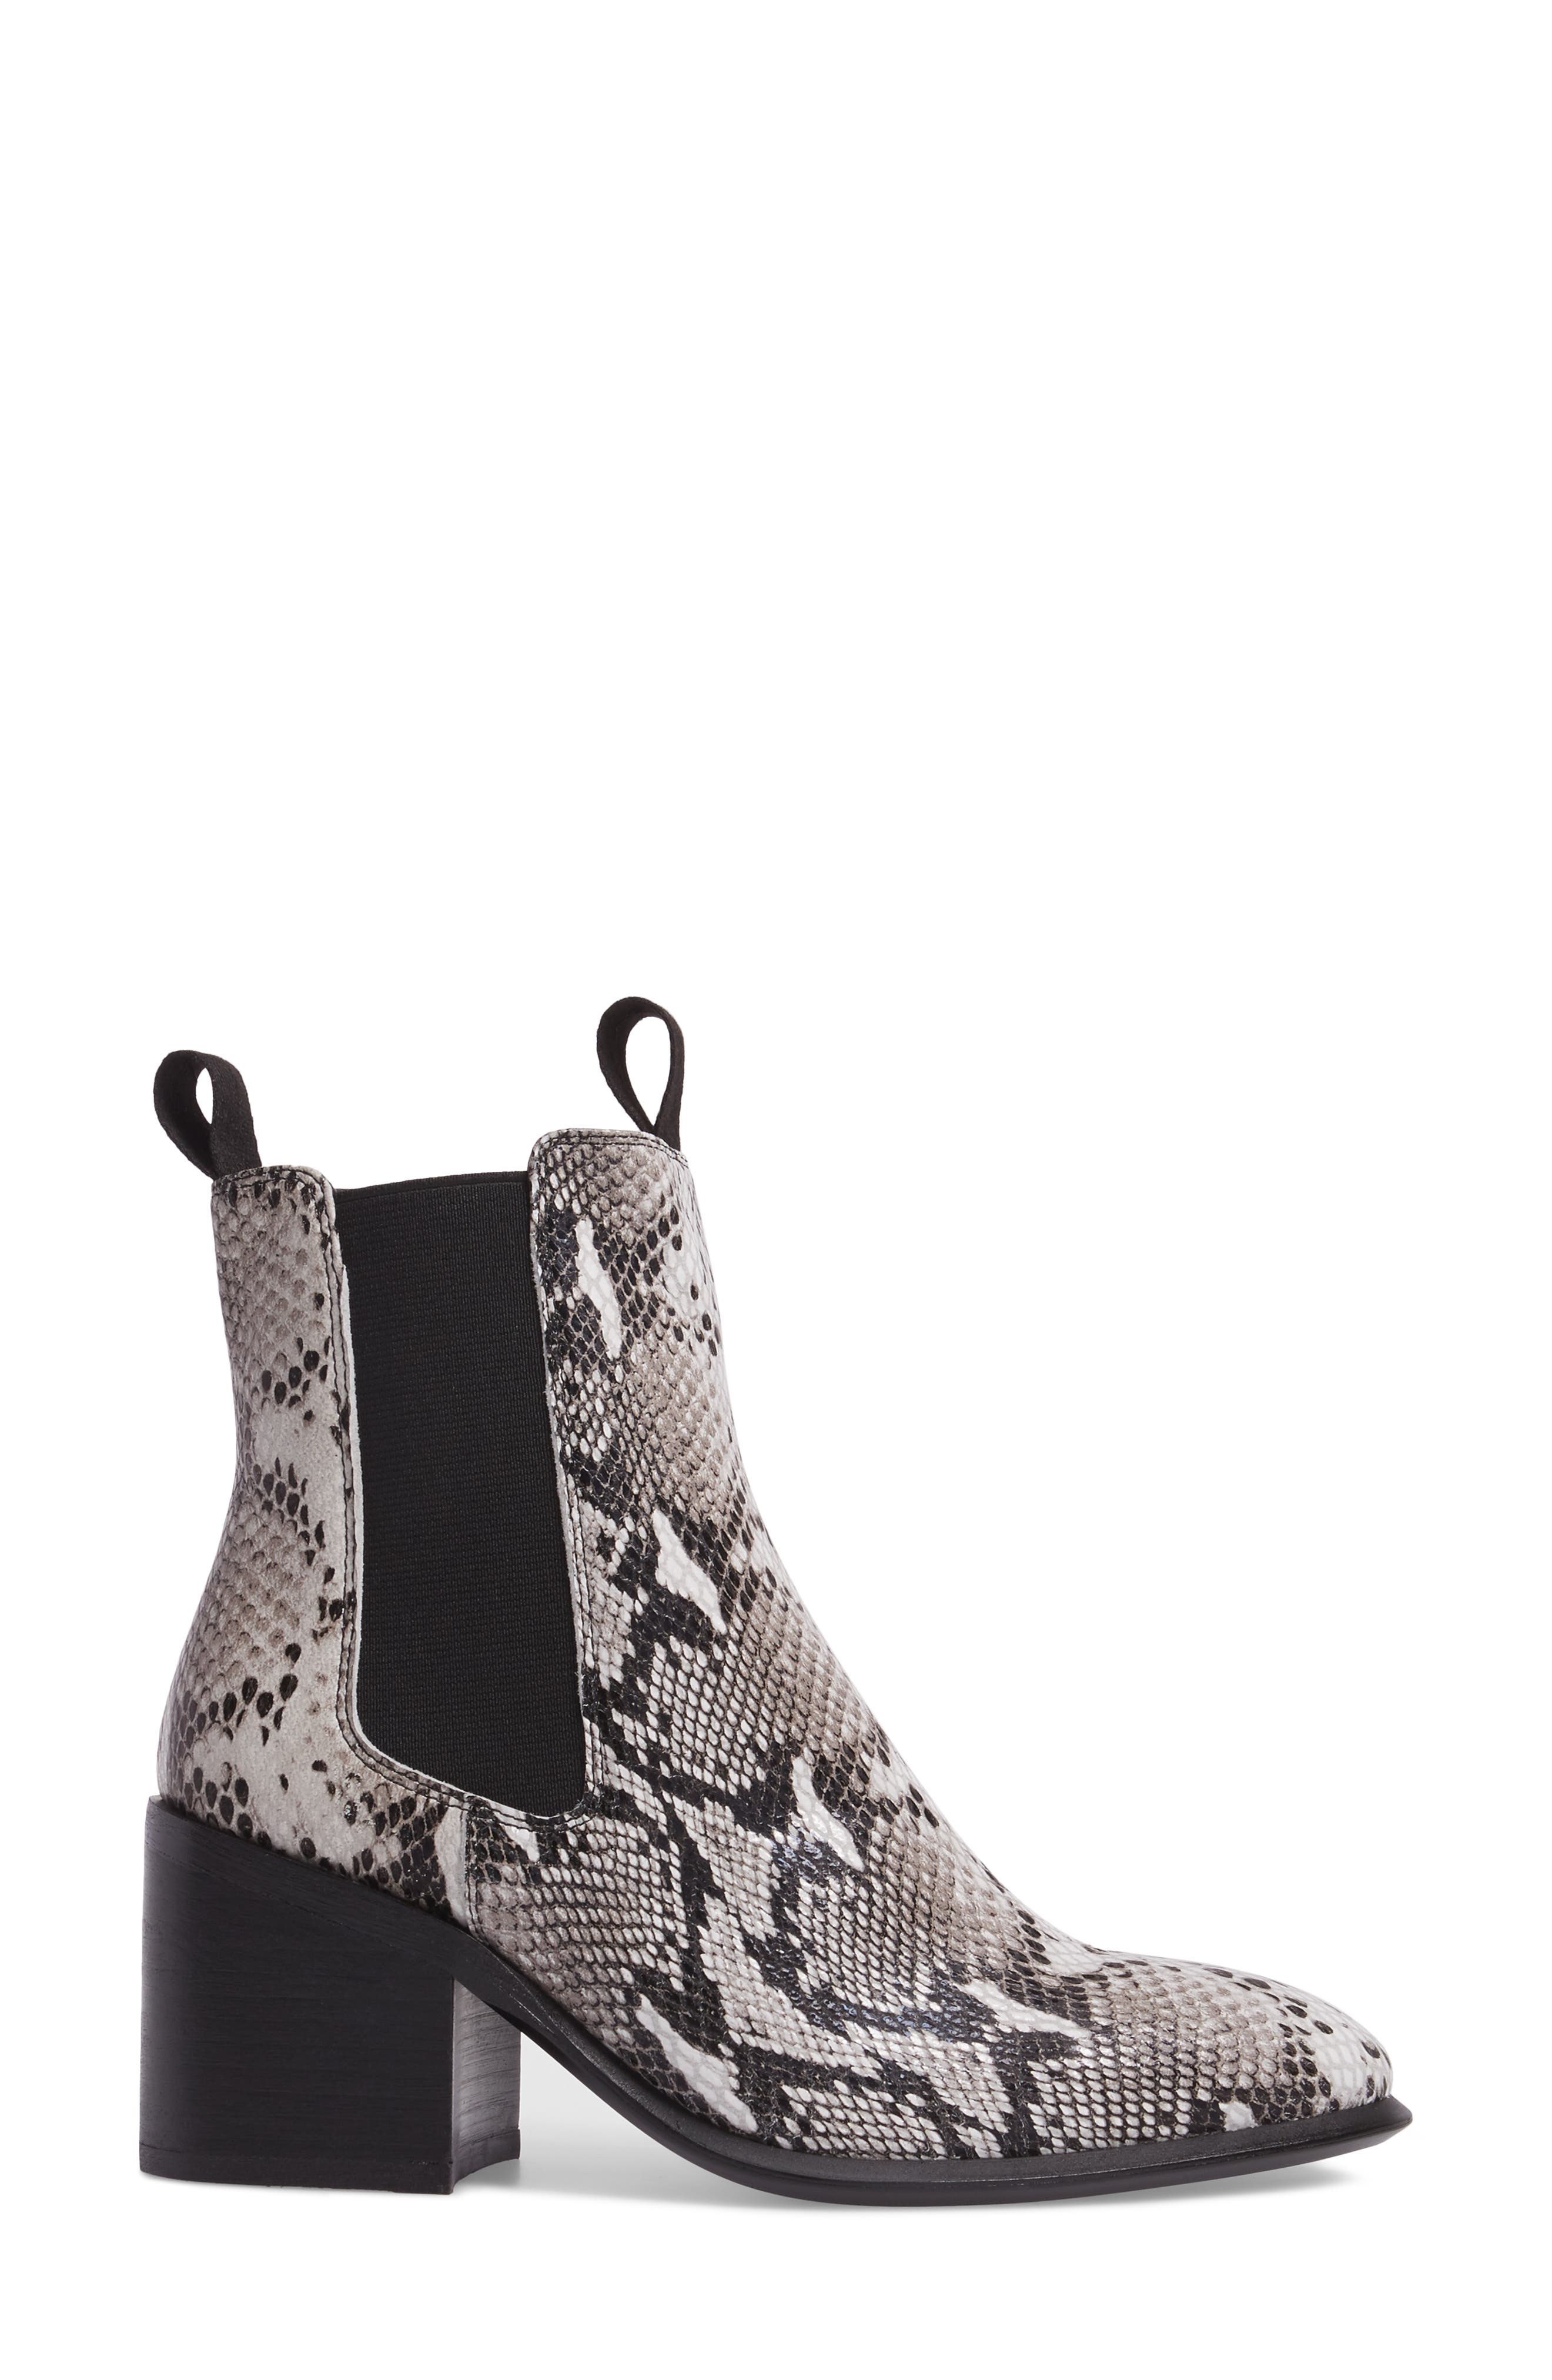 Hampton Bootie,                             Alternate thumbnail 3, color,                             Natural Snake Print Leather